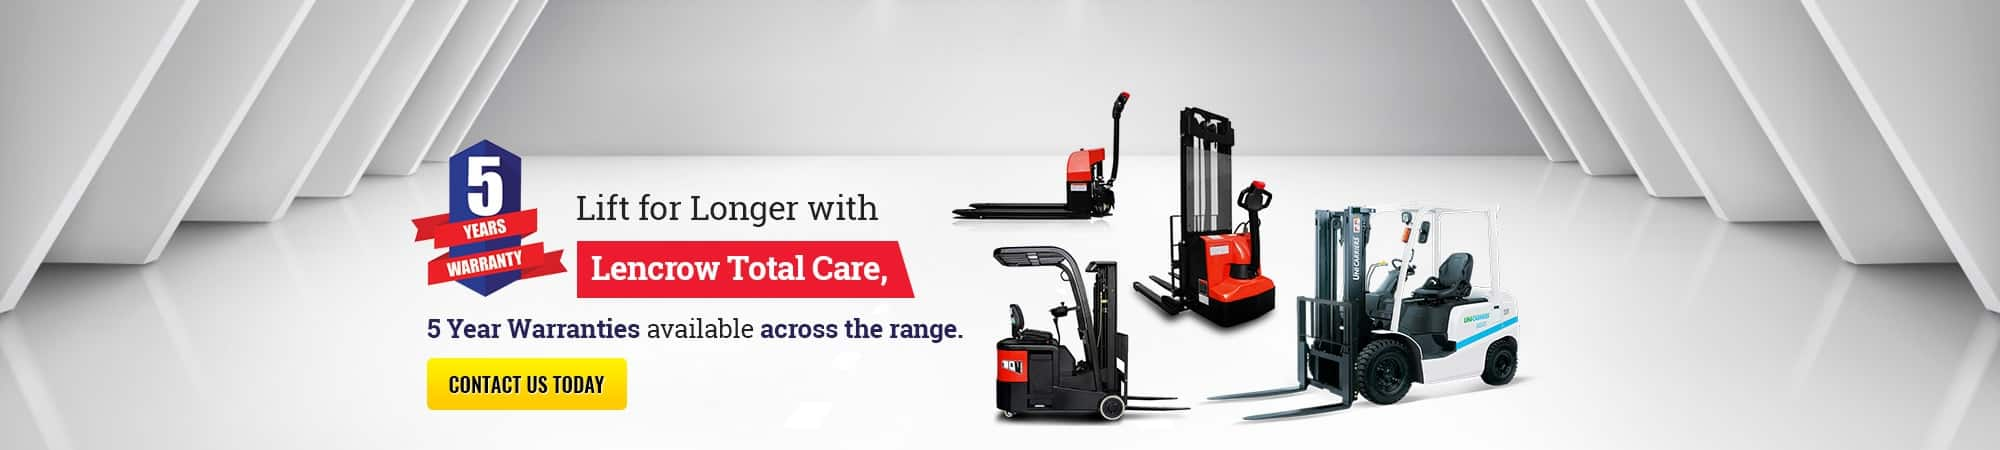 https://www.lencrowforklifts.com.au/new-forklift-warranty/